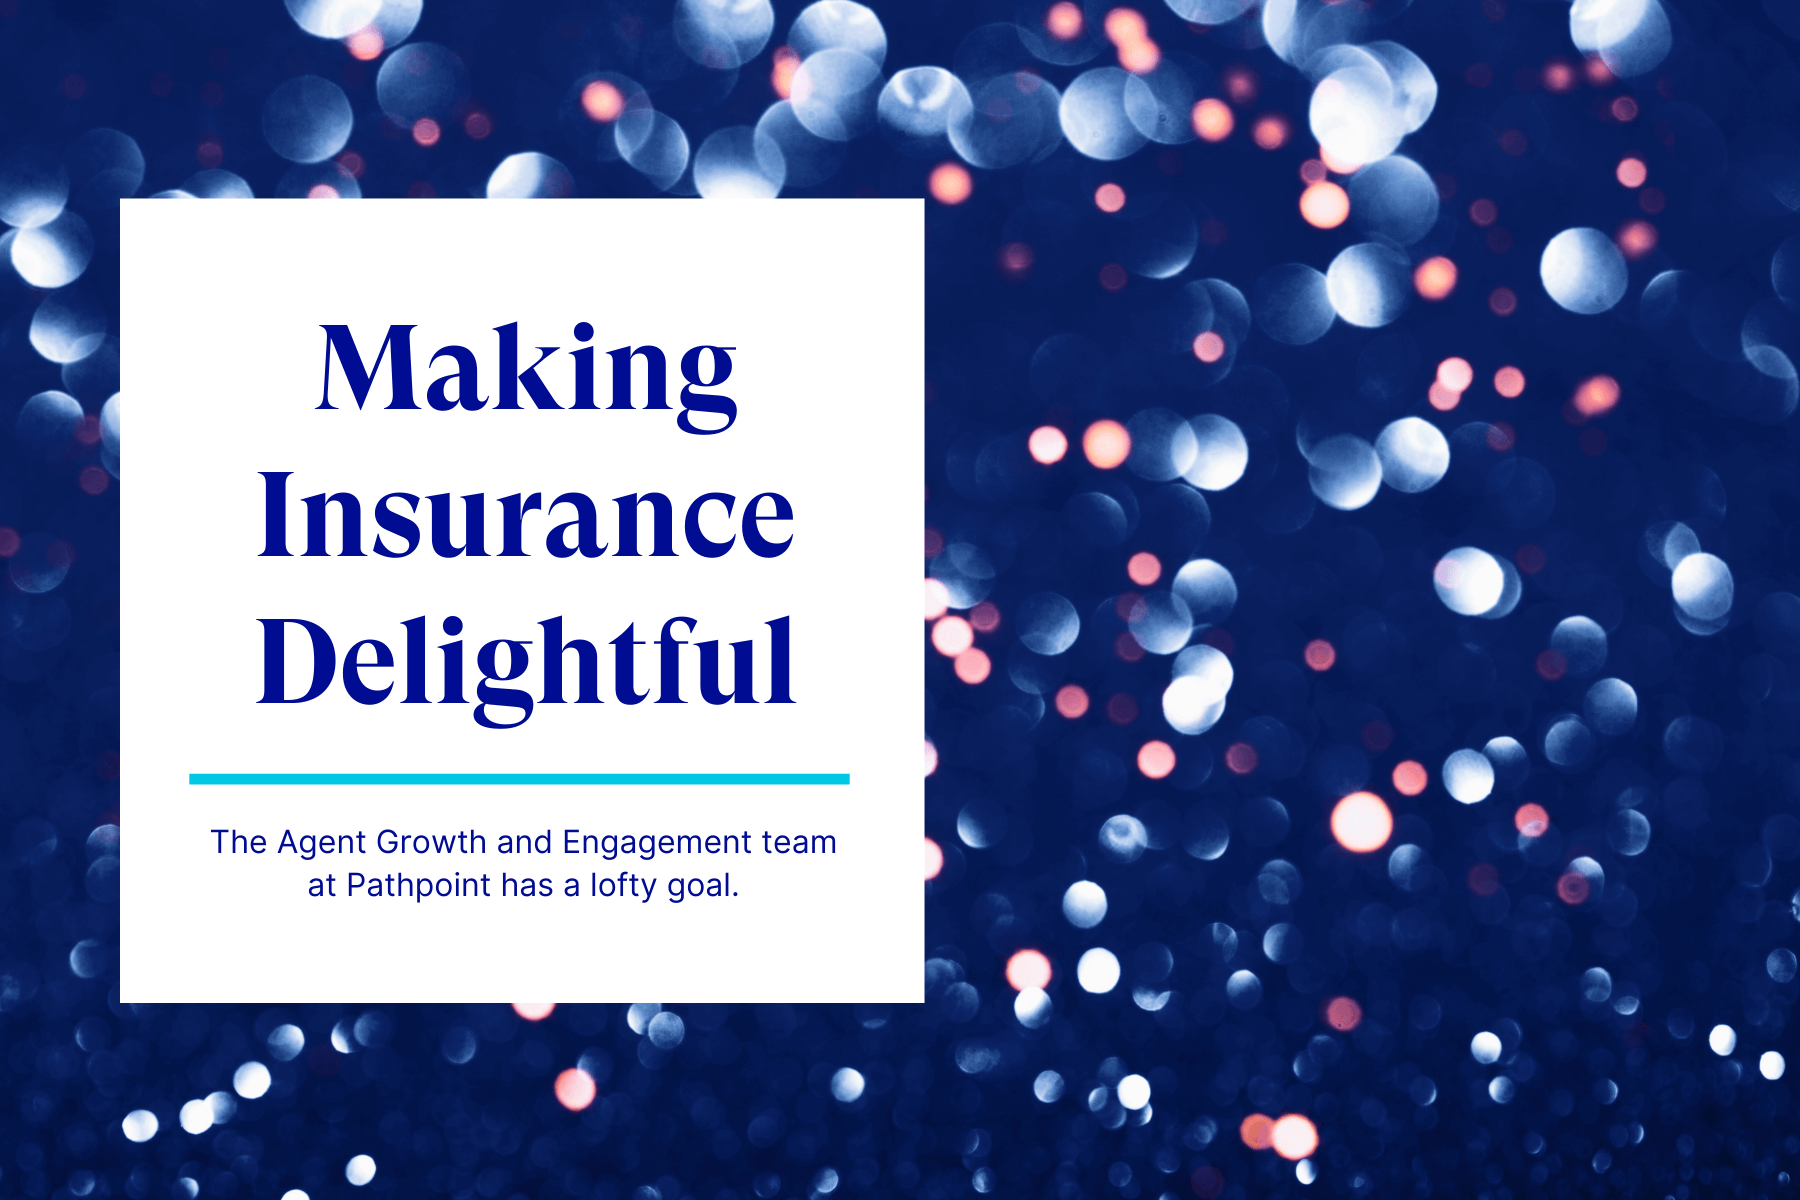 Making Insurance Delightful